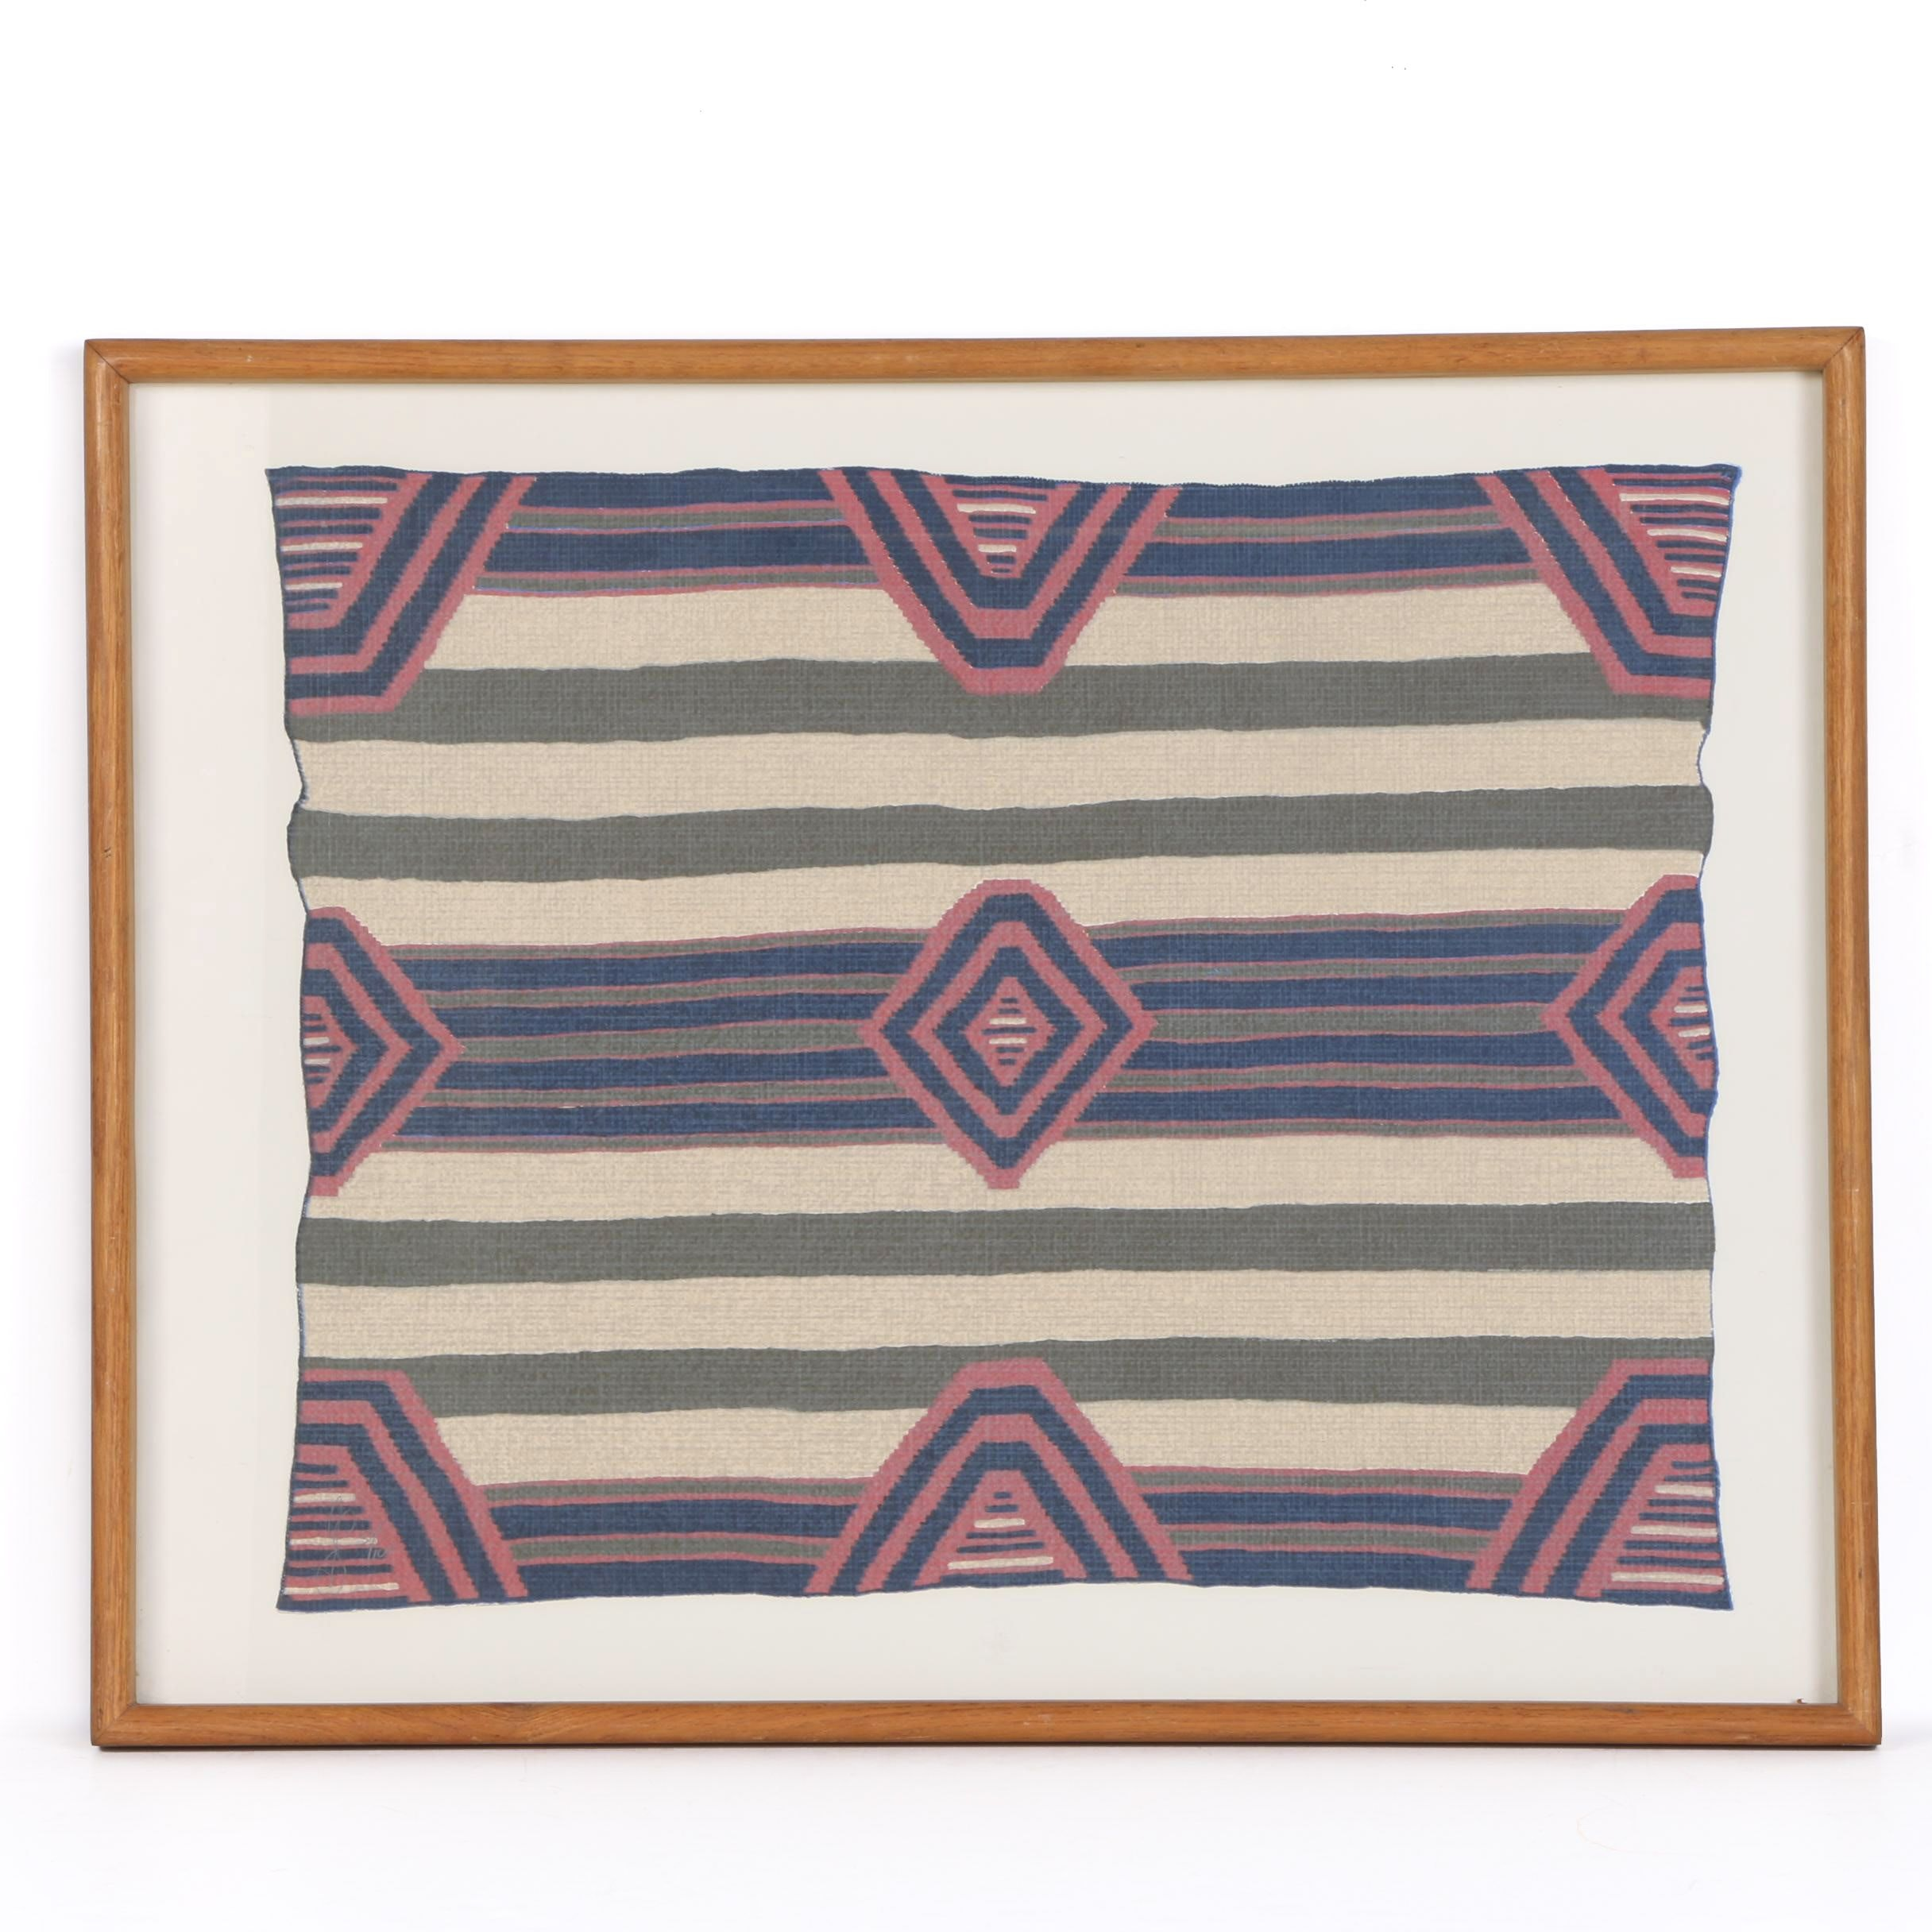 Limited Edition Serigraph on Paper of Navajo Blanket